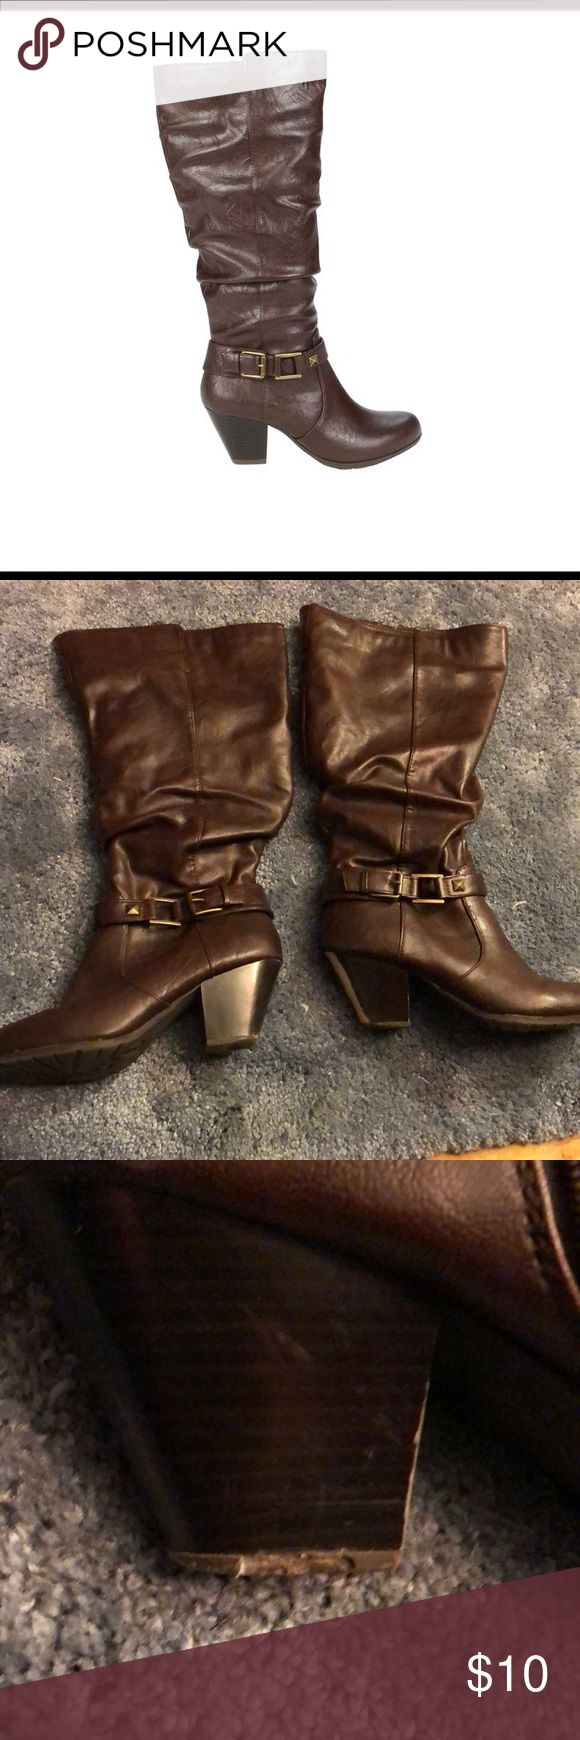 Bongo Wide Mid Calf Boots Used Bongo Brown Jorie Mid/wide calf boots. There is some flaws on the heels and bottom of the boots which is typical from wear. I pictured all of the flaws that they have BONGO Shoes Heeled Boots